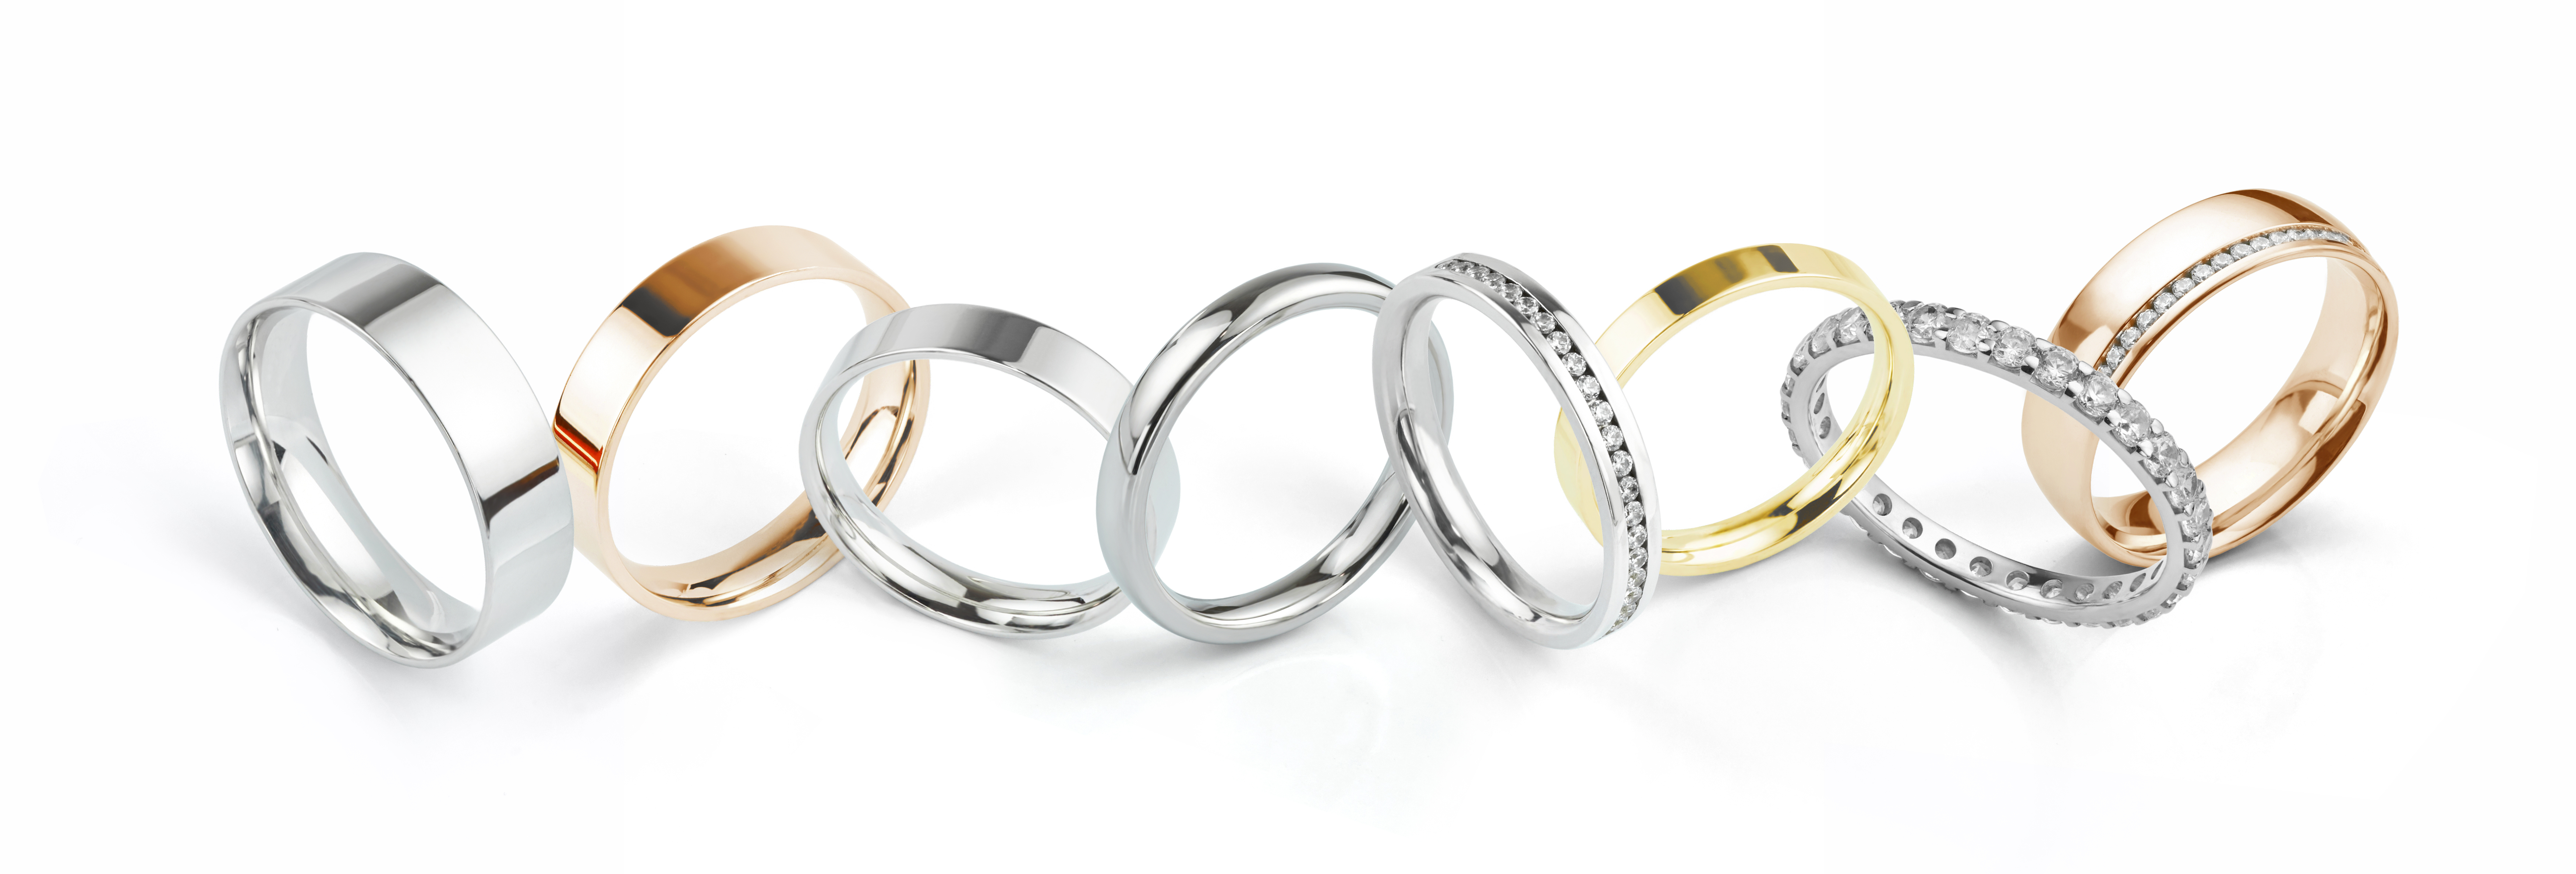 Choosing Your Perfect Wedding Band